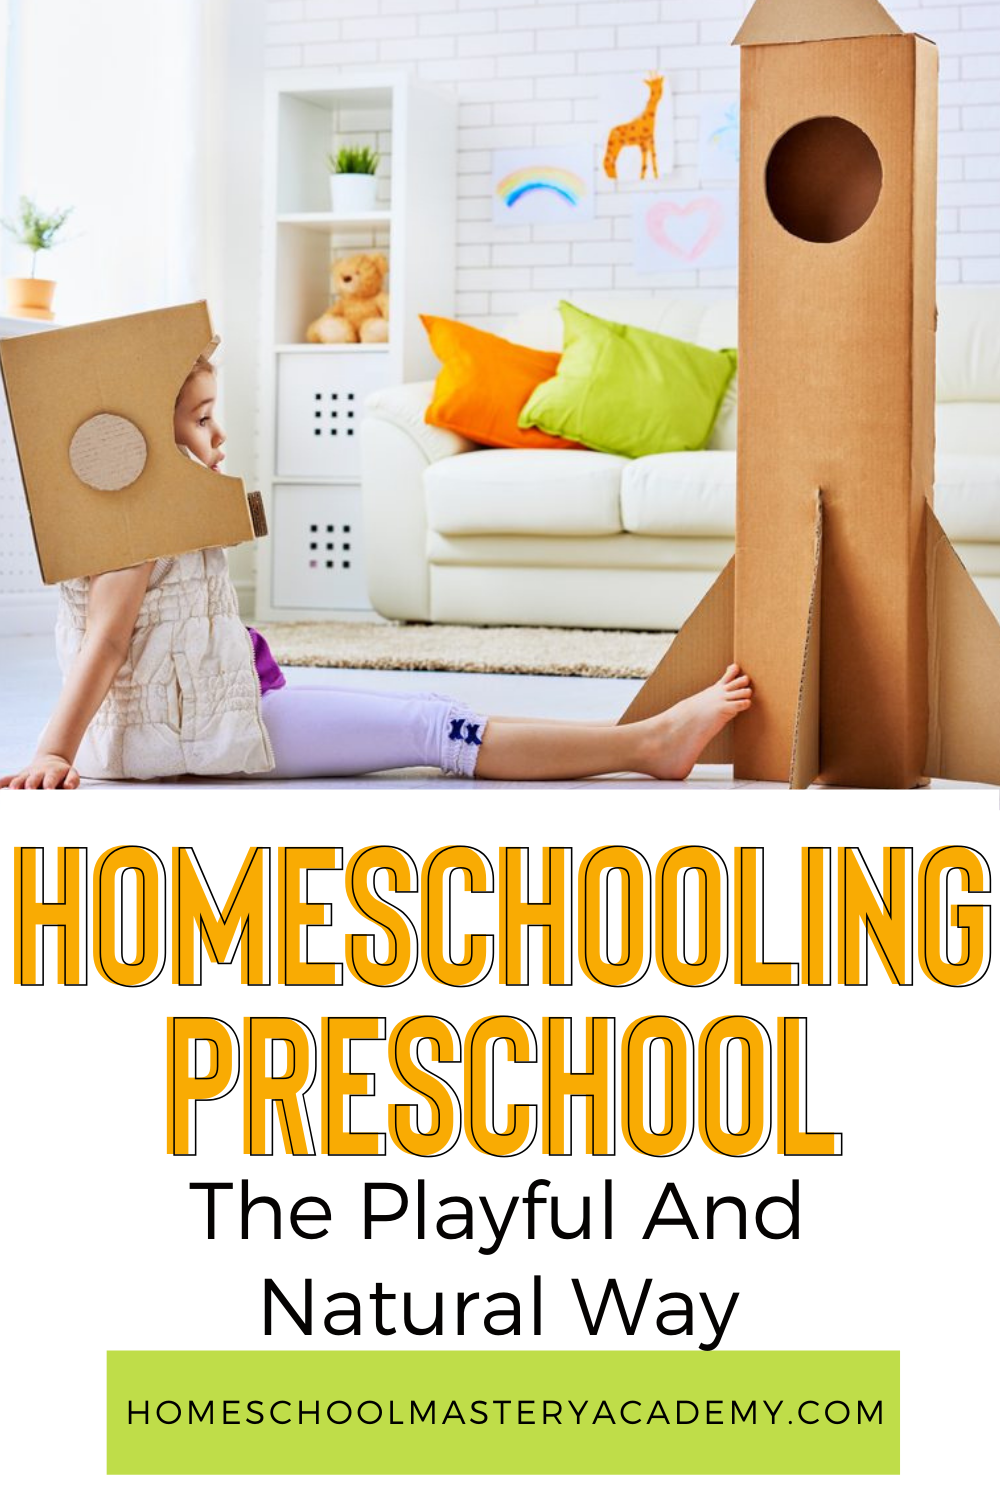 Homeschooling preschool shouldn't be stressful at all, for you or your child. We have some wonderful ideas for a relaxed but productive way to naturally homeschool preschool at home. And, it isn't costly at all! #homeschool #preschool #preschoolathome #prek #homeschool